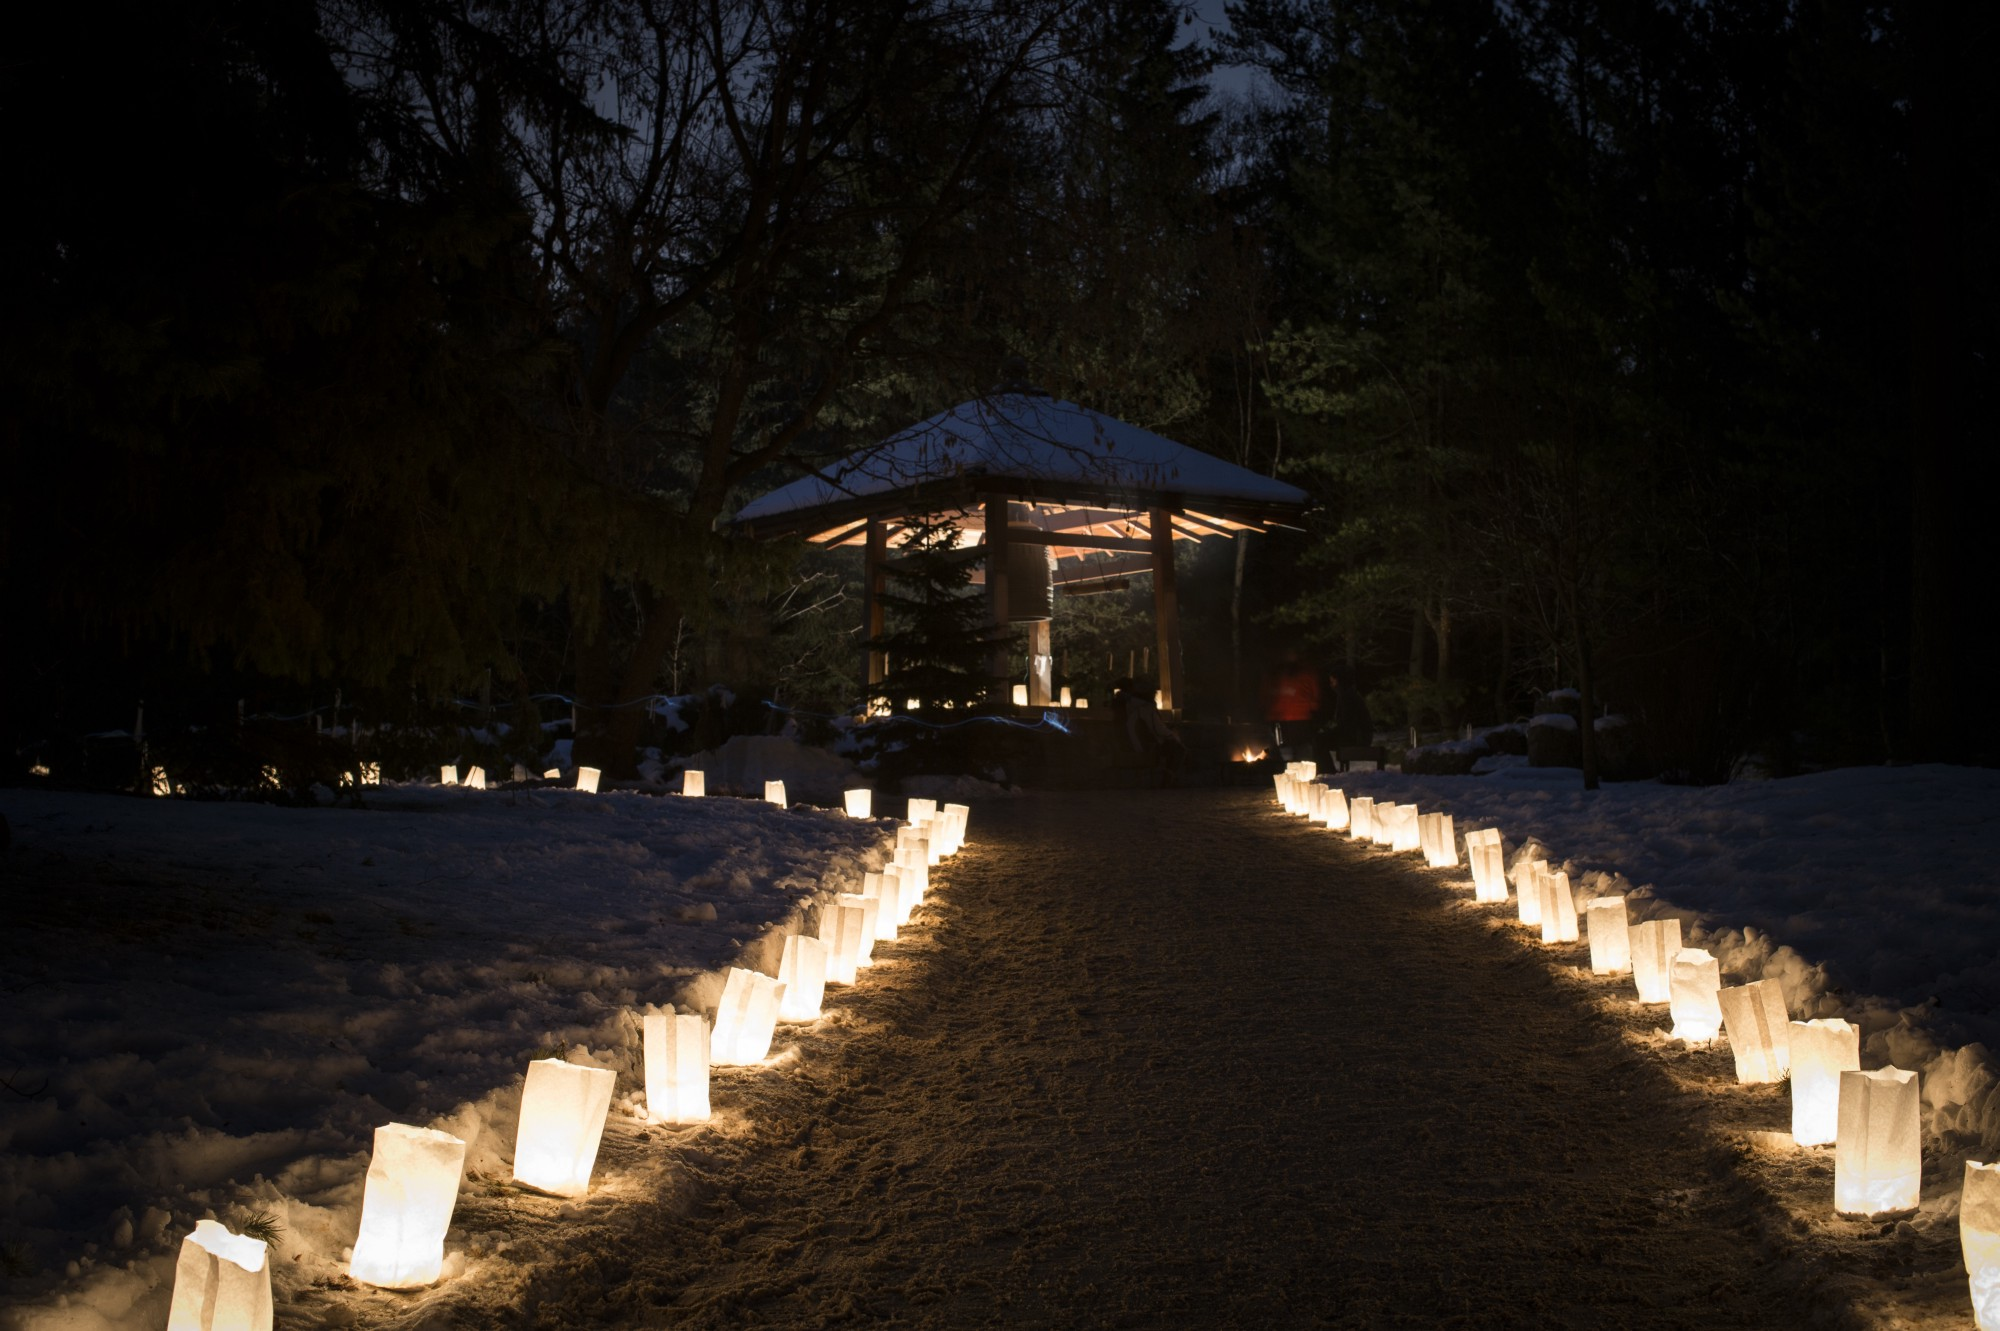 ... Of The University Of Alberta Botanic Gardens Were Aglow With Candle  Light As Part Of The Gardenu0027s Annual Luminaria Event. In Case You Missed  It, ...